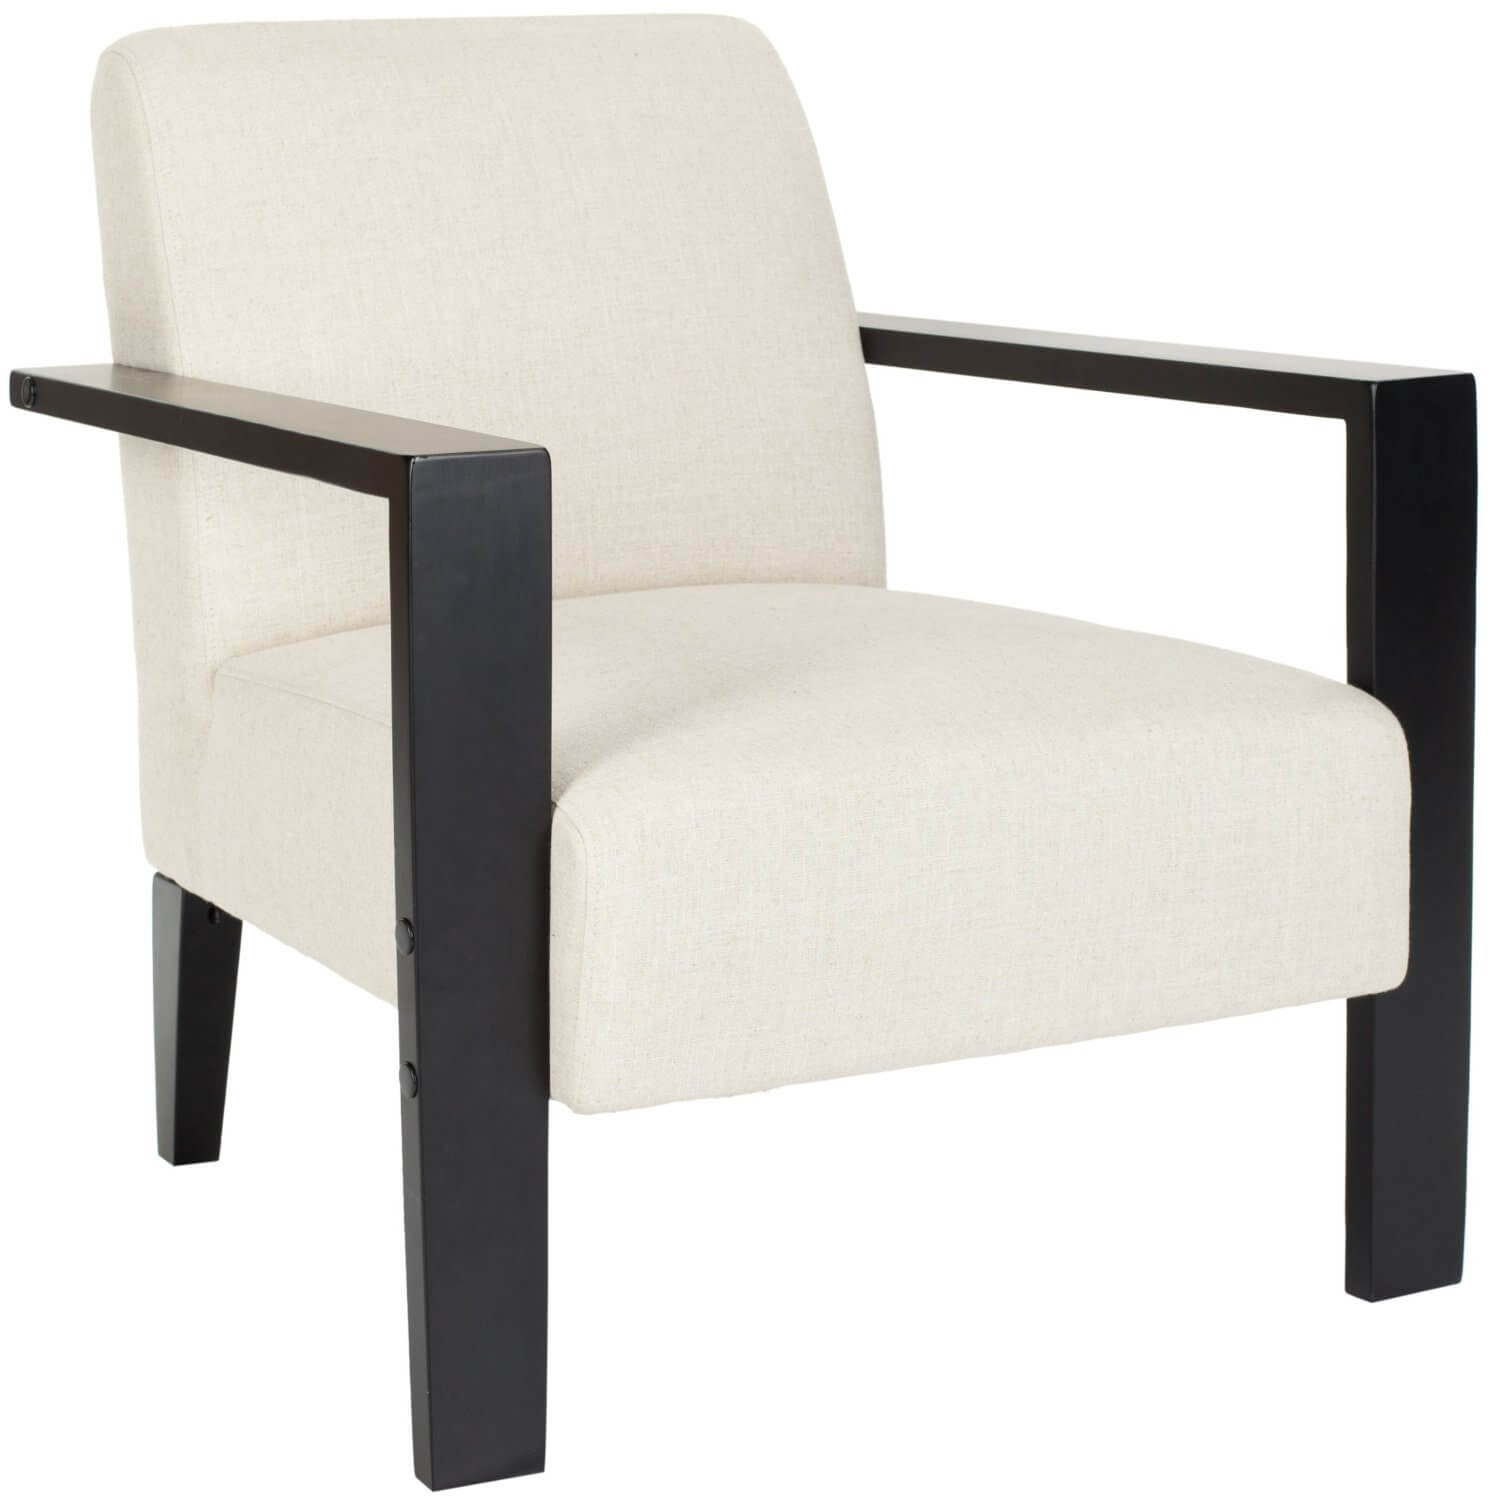 modern leather accent chairs cheap upholstered dining 37 white for the living room off fabric and black finish of this chair by safavieh can set